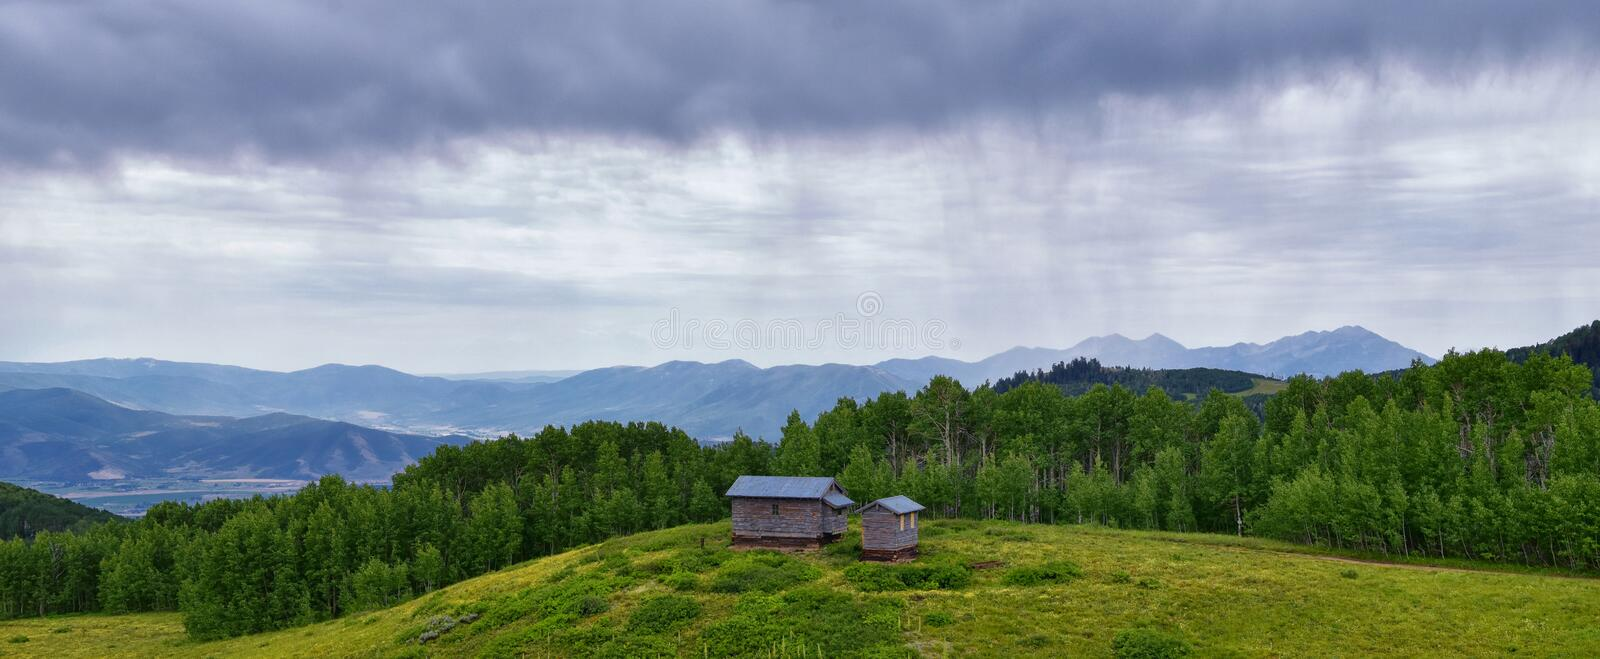 Guardsman Pass views of Panoramic Landscape of the Pass, Midway and Heber Valley along the Wasatch Front Rocky Mountains, Summer F. Orests, Clouds and Rainstorm royalty free stock image